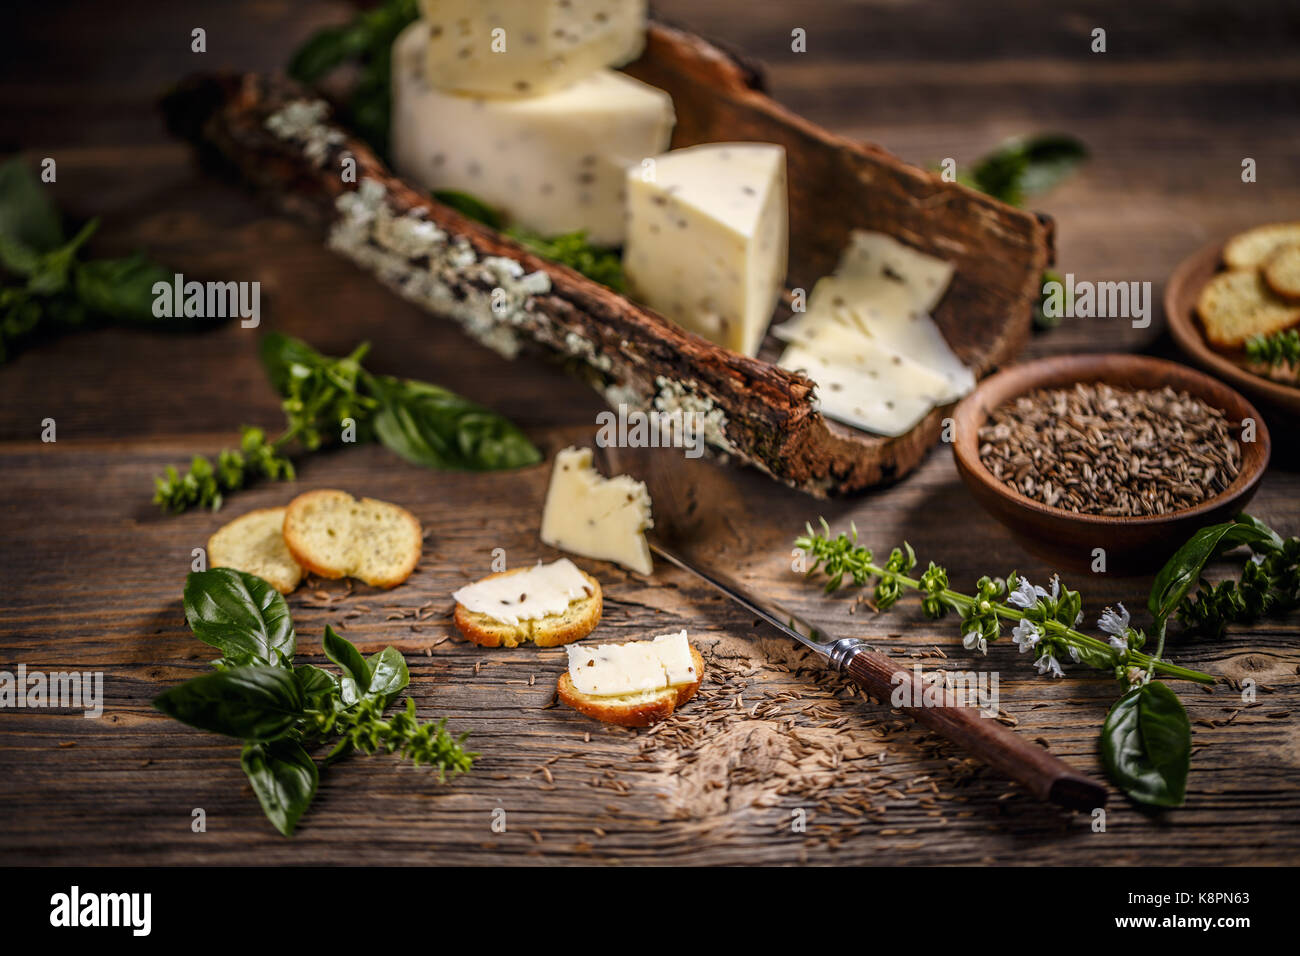 Still life of cheese with caraway seeds on bark - Stock Image